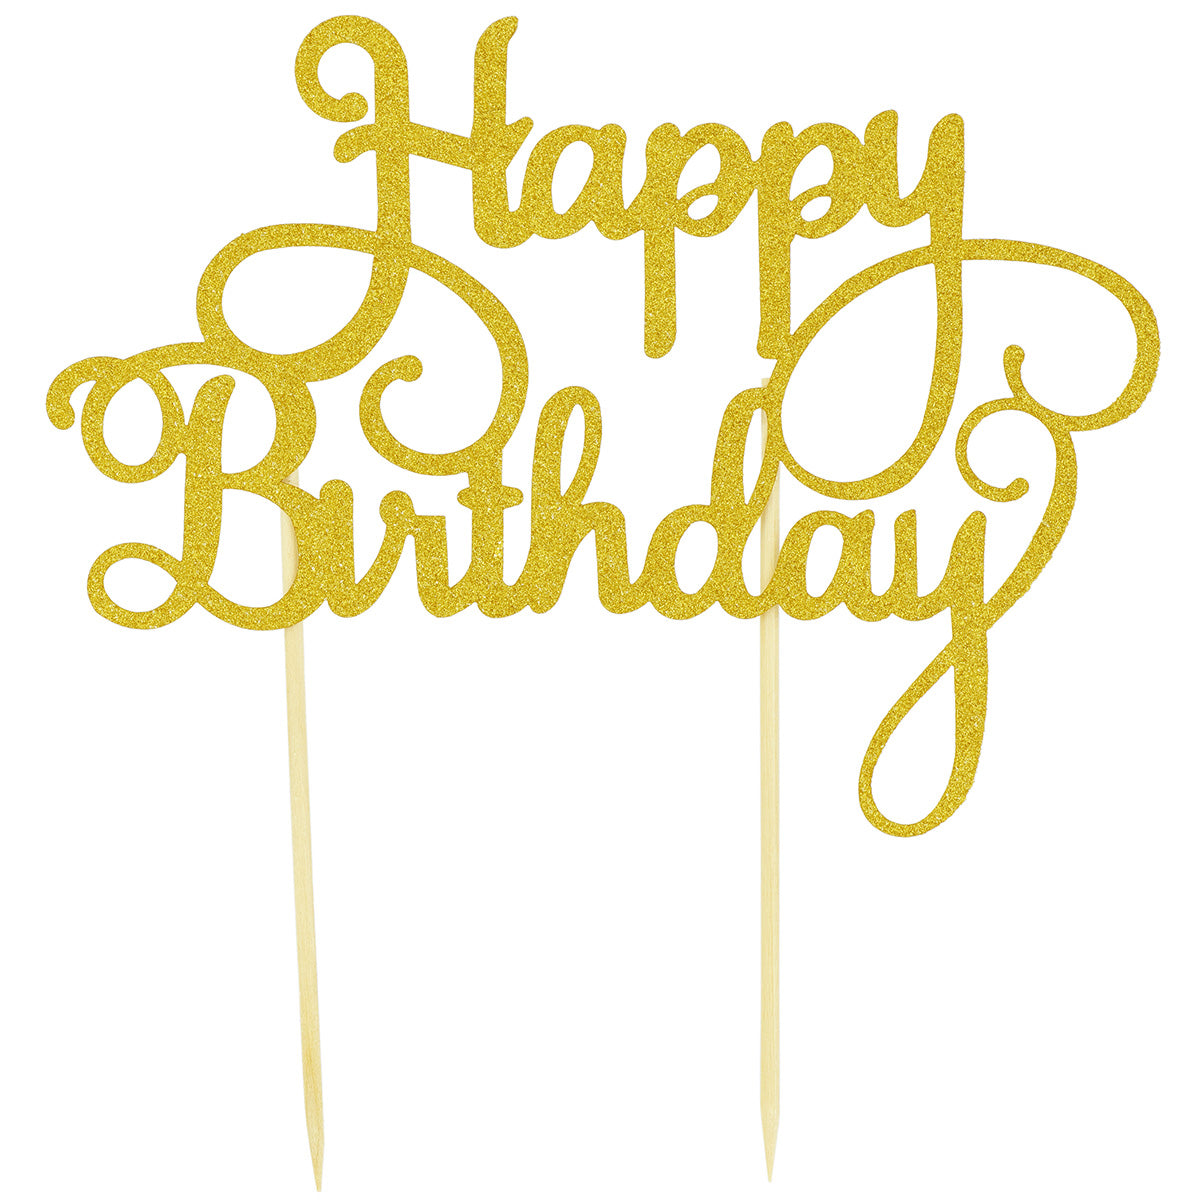 Glitter Gold 'Happy Birthday' Cake Topper with Two Sticks